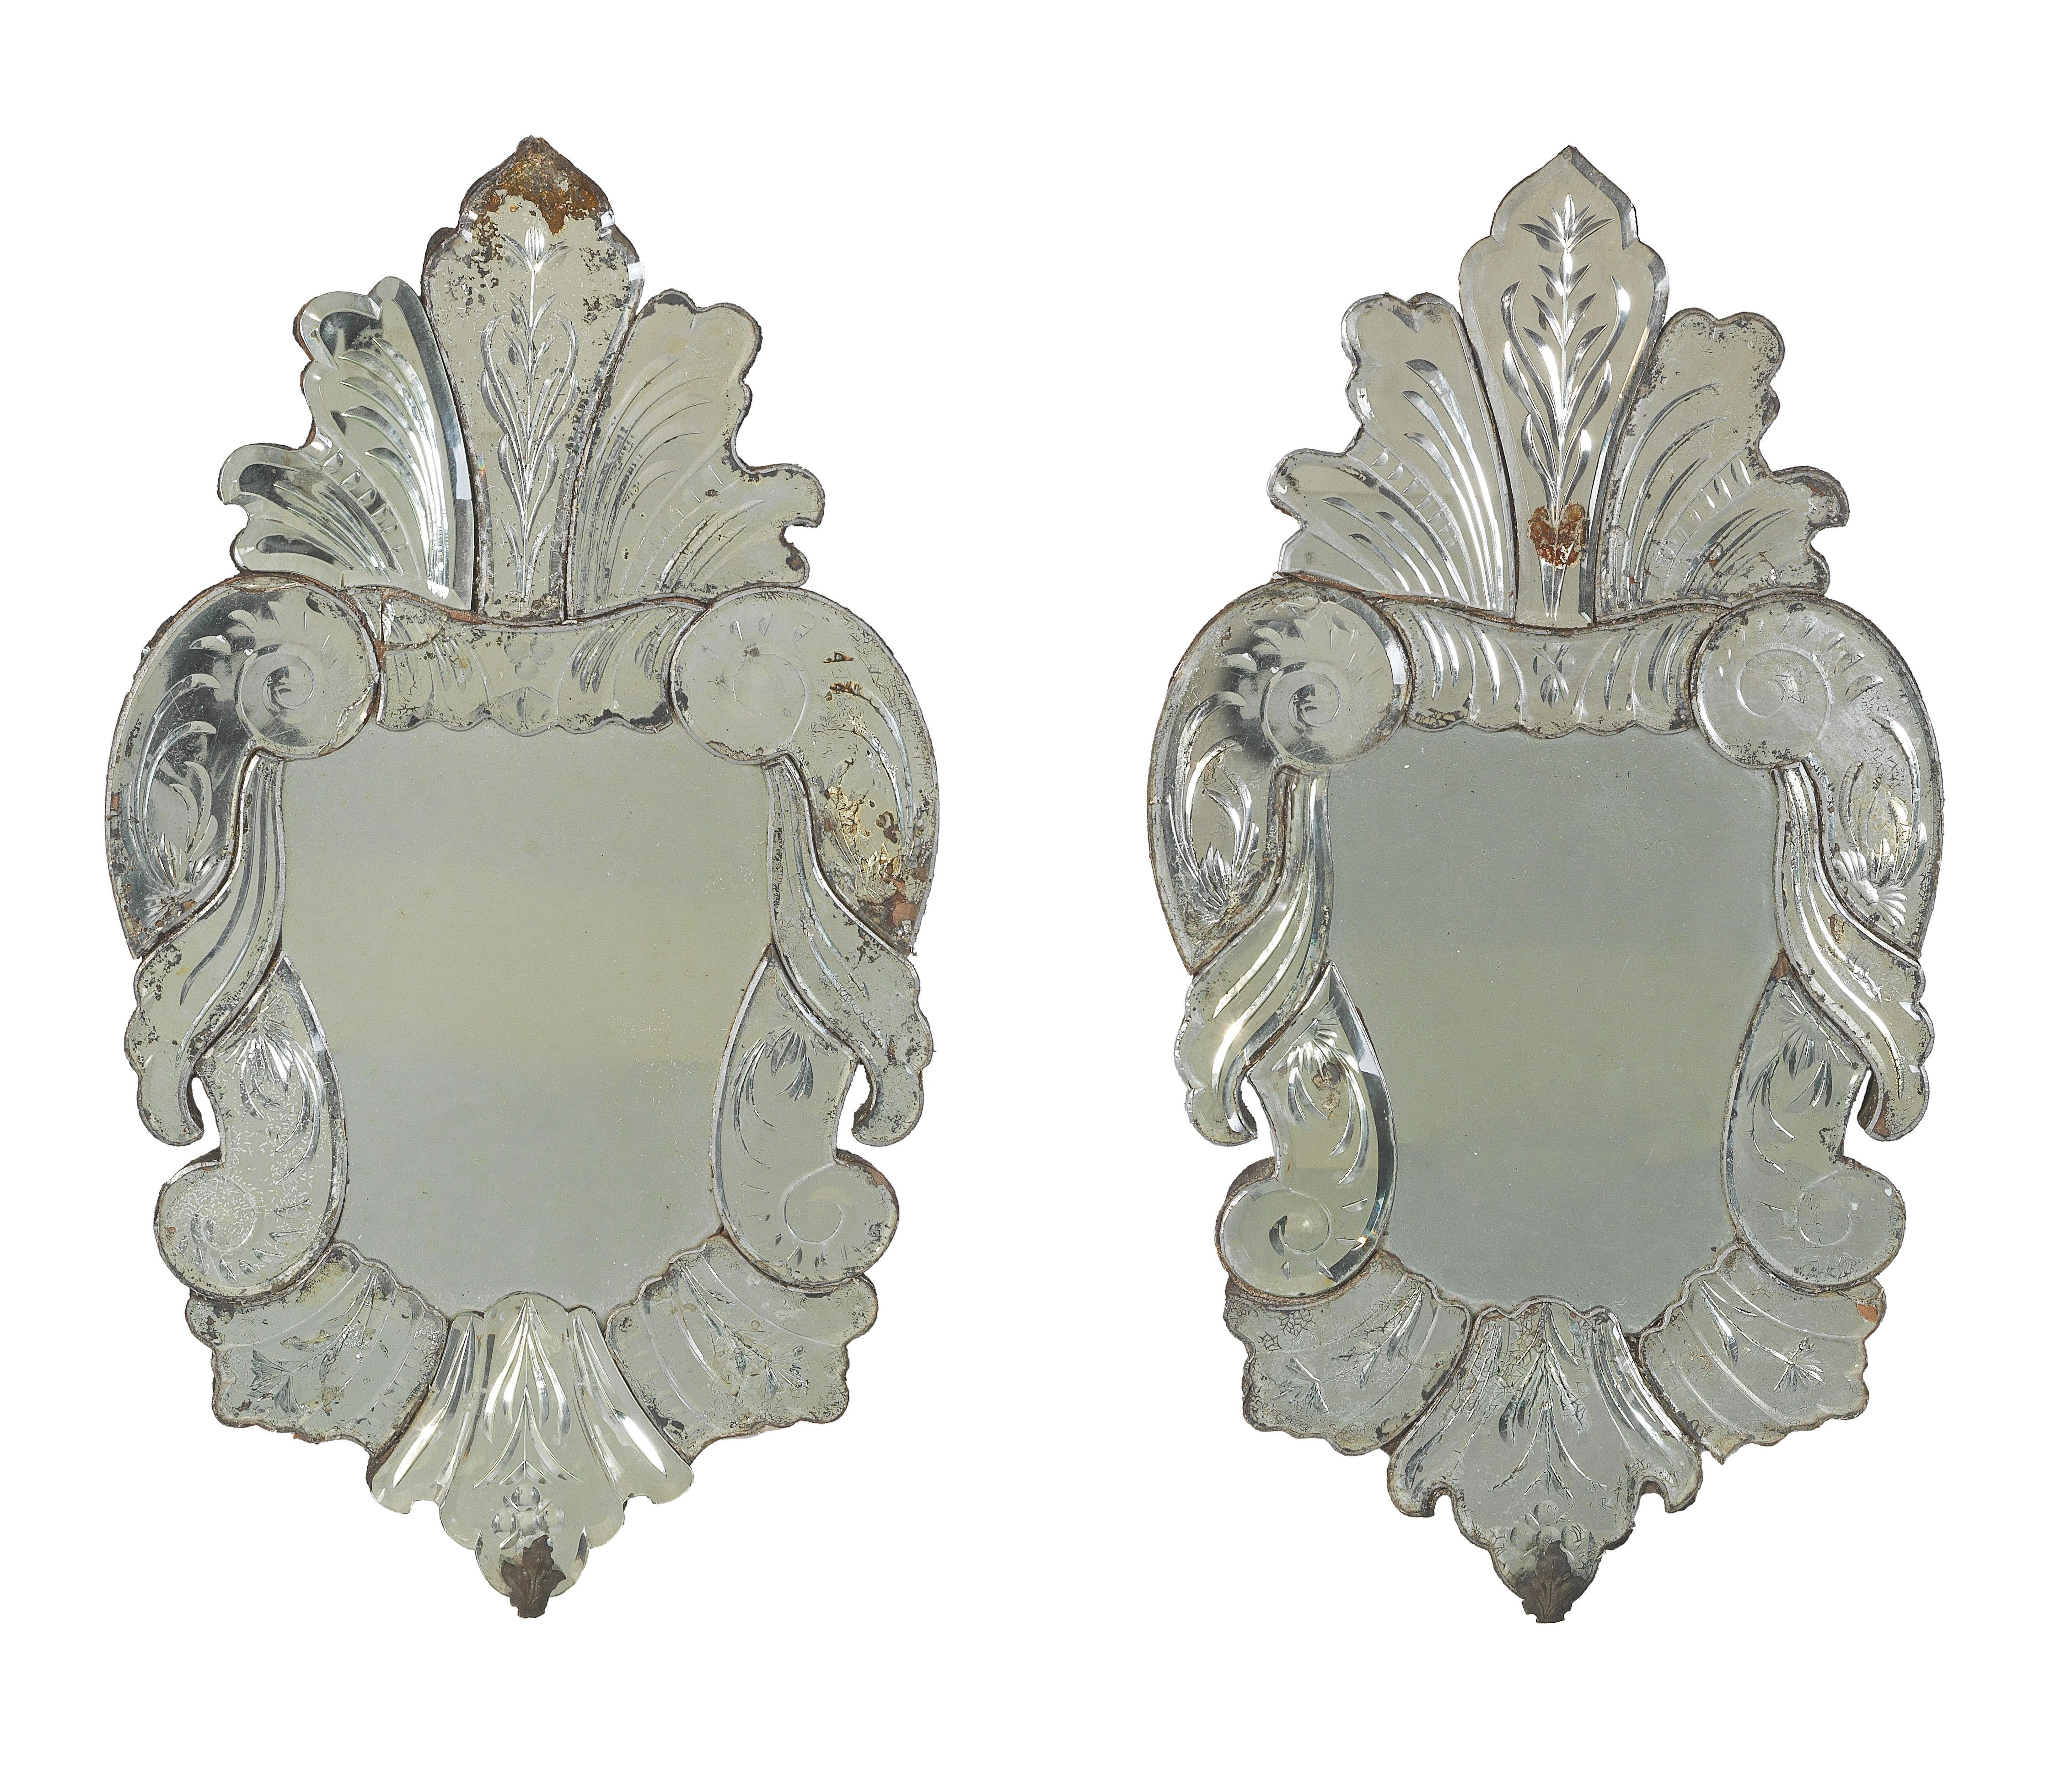 A Pair Of Small Wall Mirrors In Venetian Style Property From Aristocratic Estates And Important Provenance 2019 01 28 Realized Price Eur 625 Dorotheum